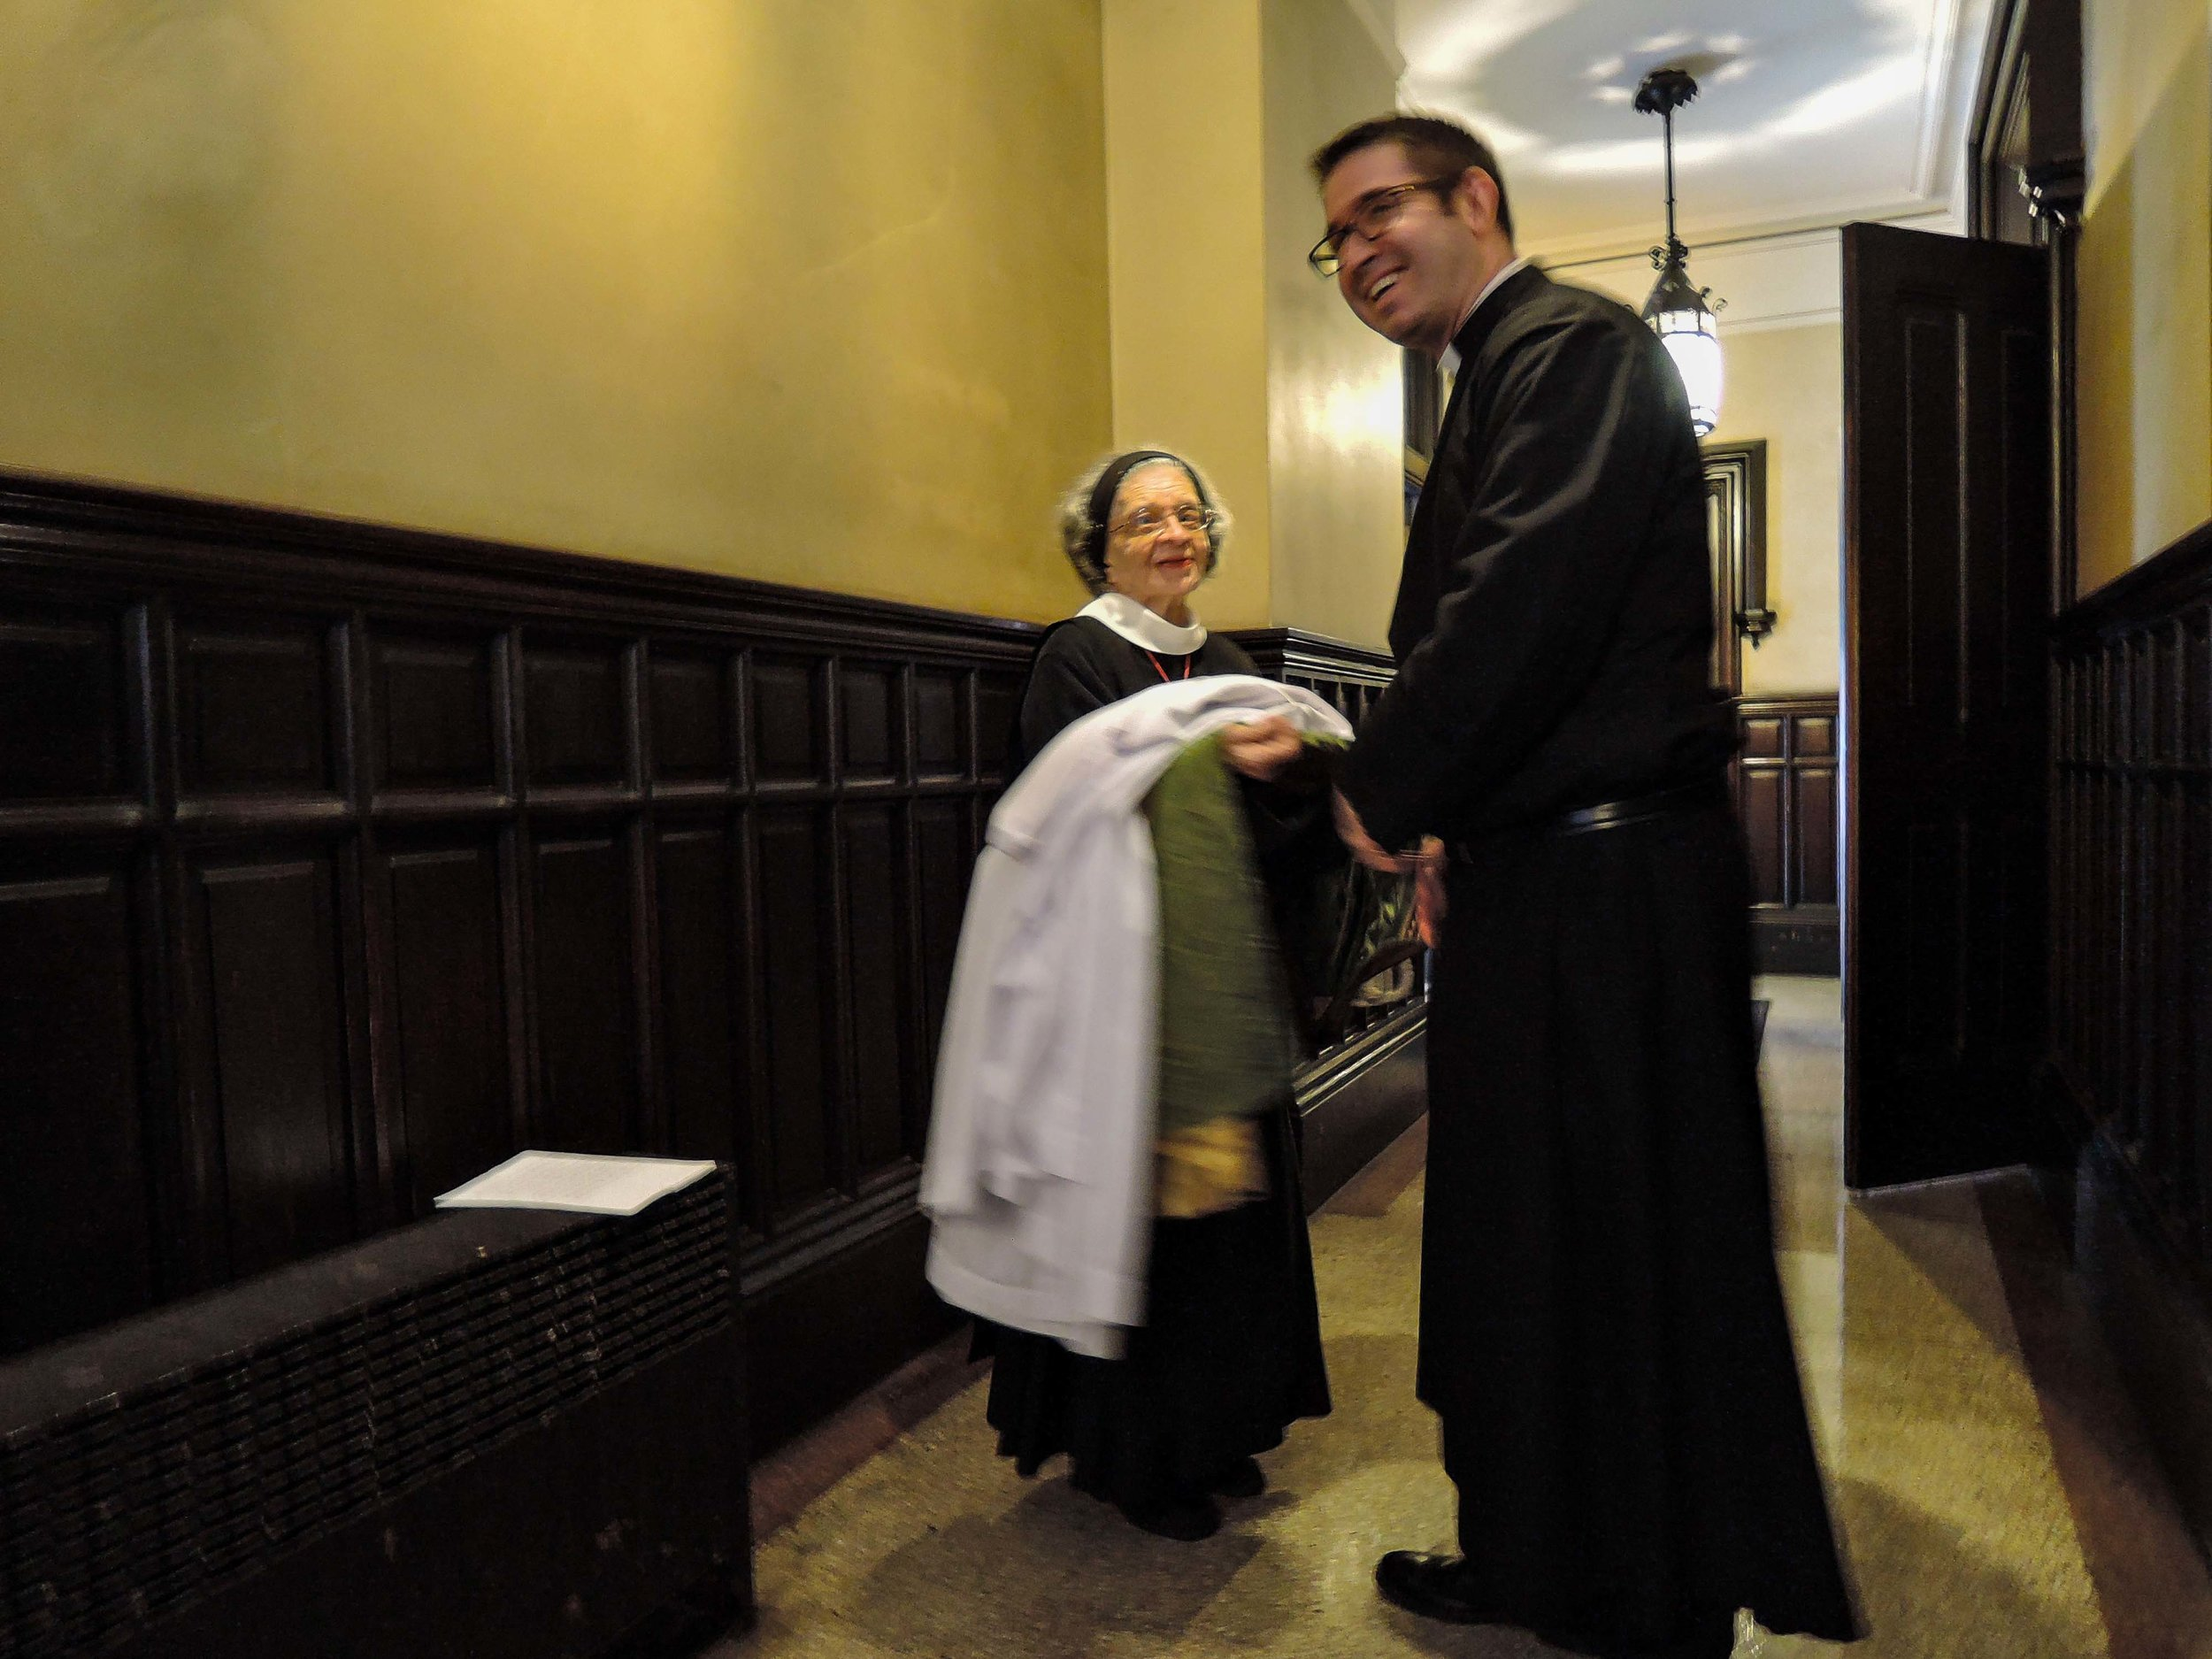 Sr. Laura Katharine assists Fr. Jacobson with his vestments after Mass.